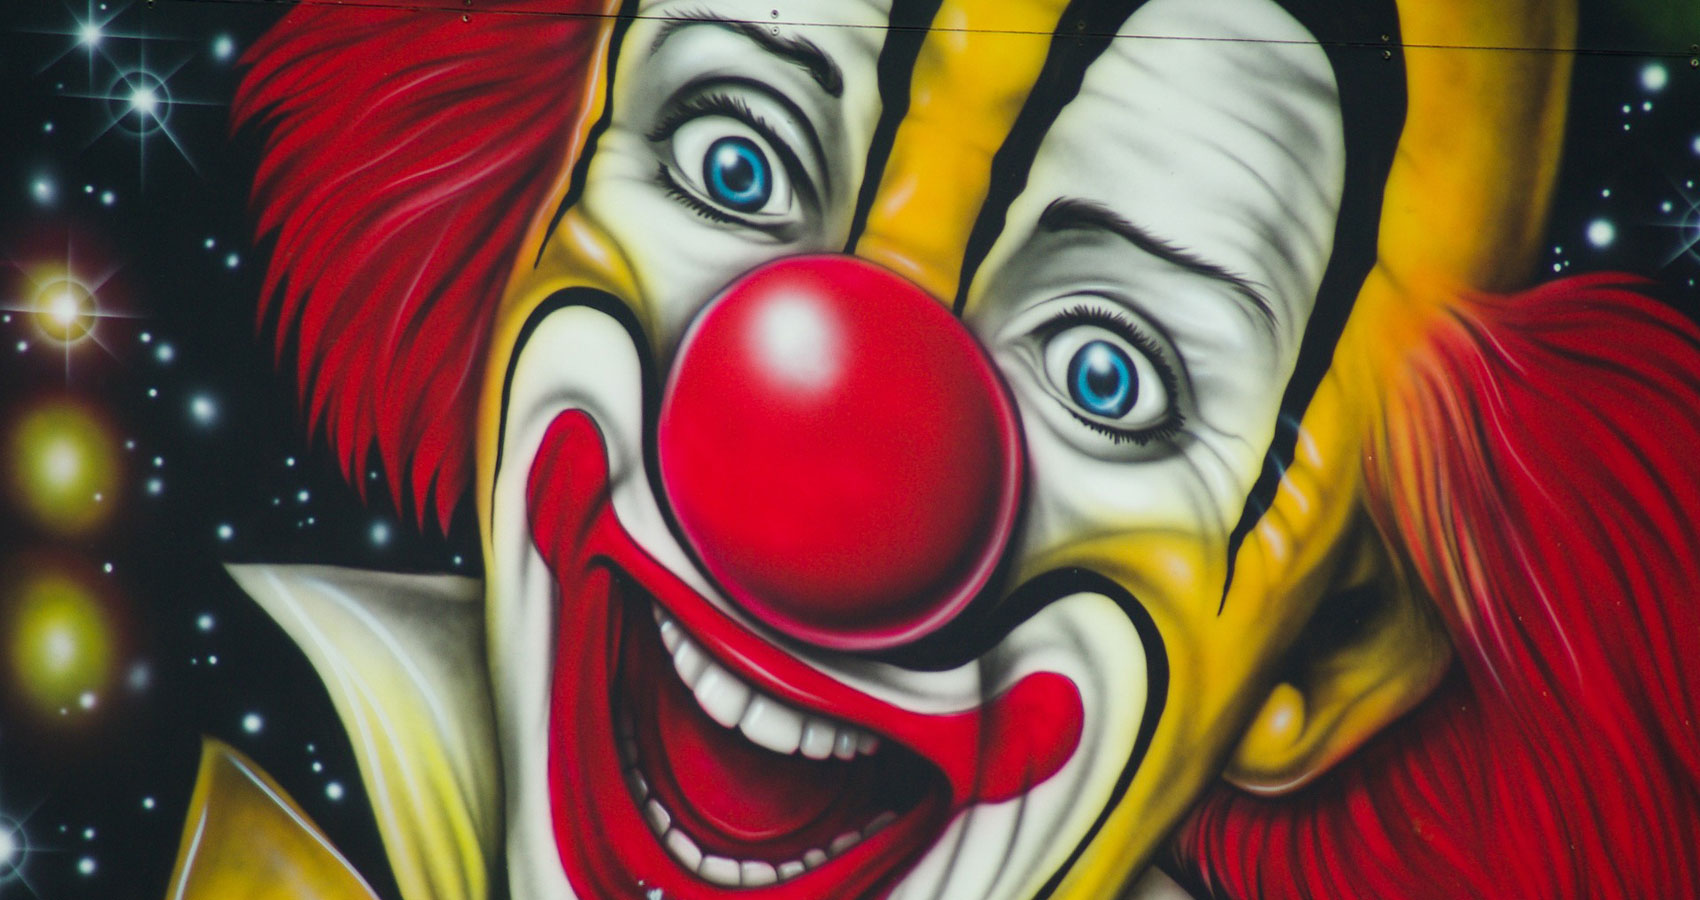 Bring On The Clowns!, poetry by Donna Africa at Spillwords.com